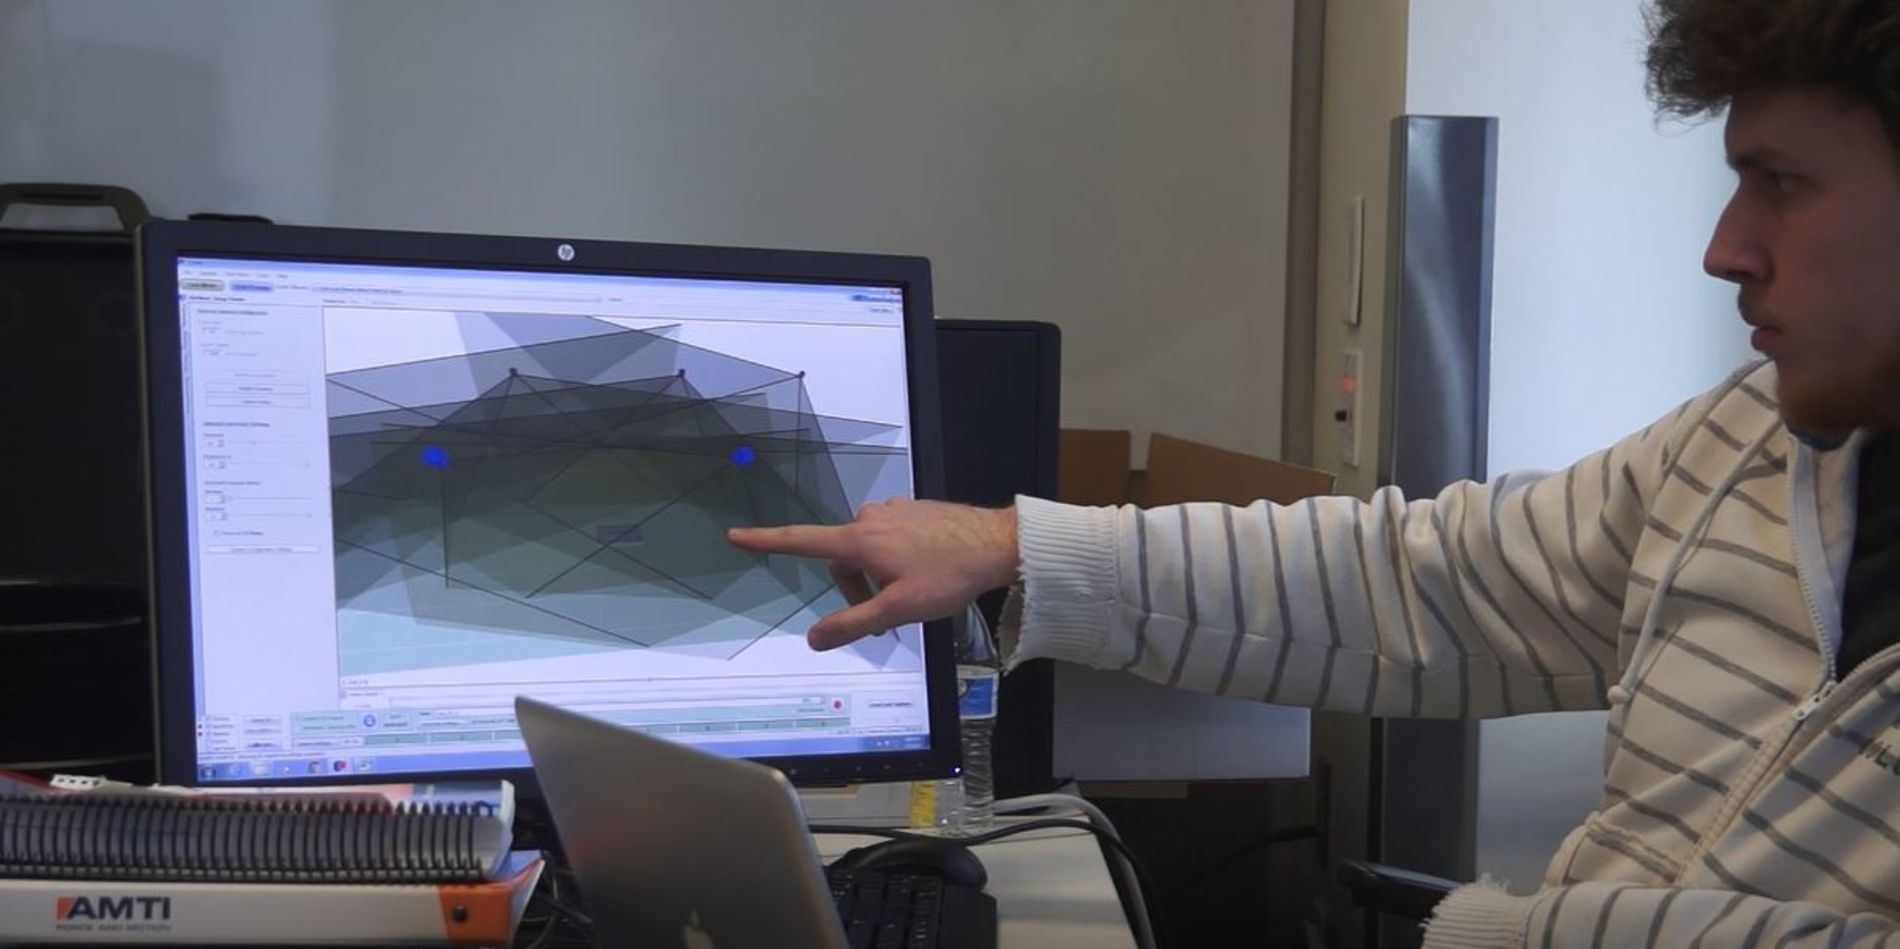 Engineering student at Temple University working on computer model design